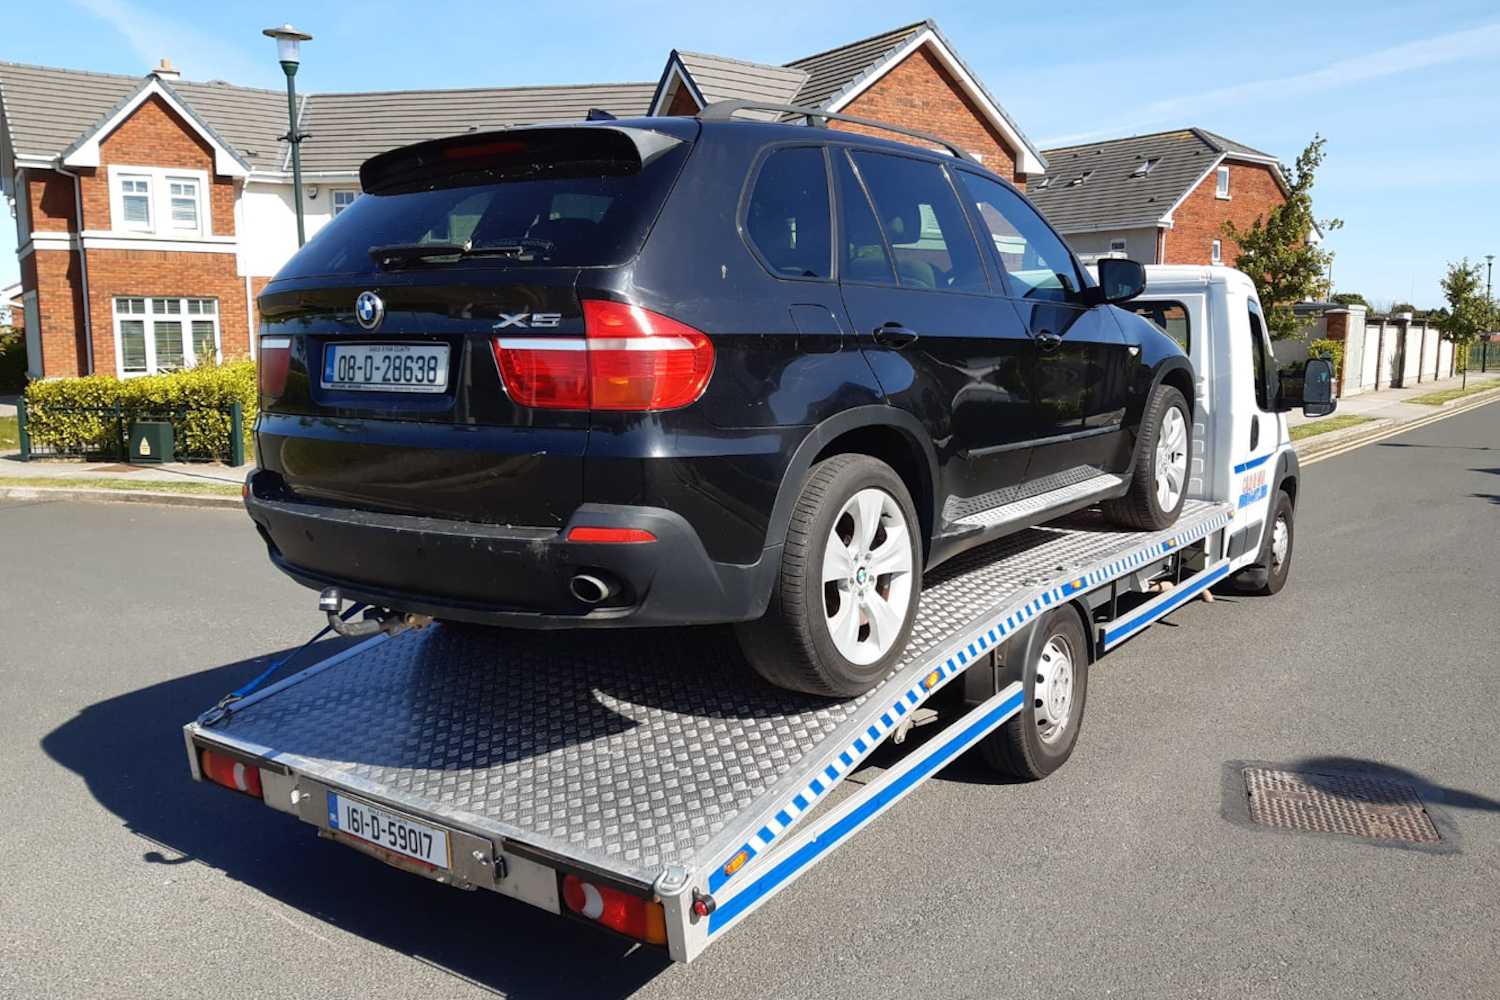 Car News | AsapTow Dublin free towing and assistance